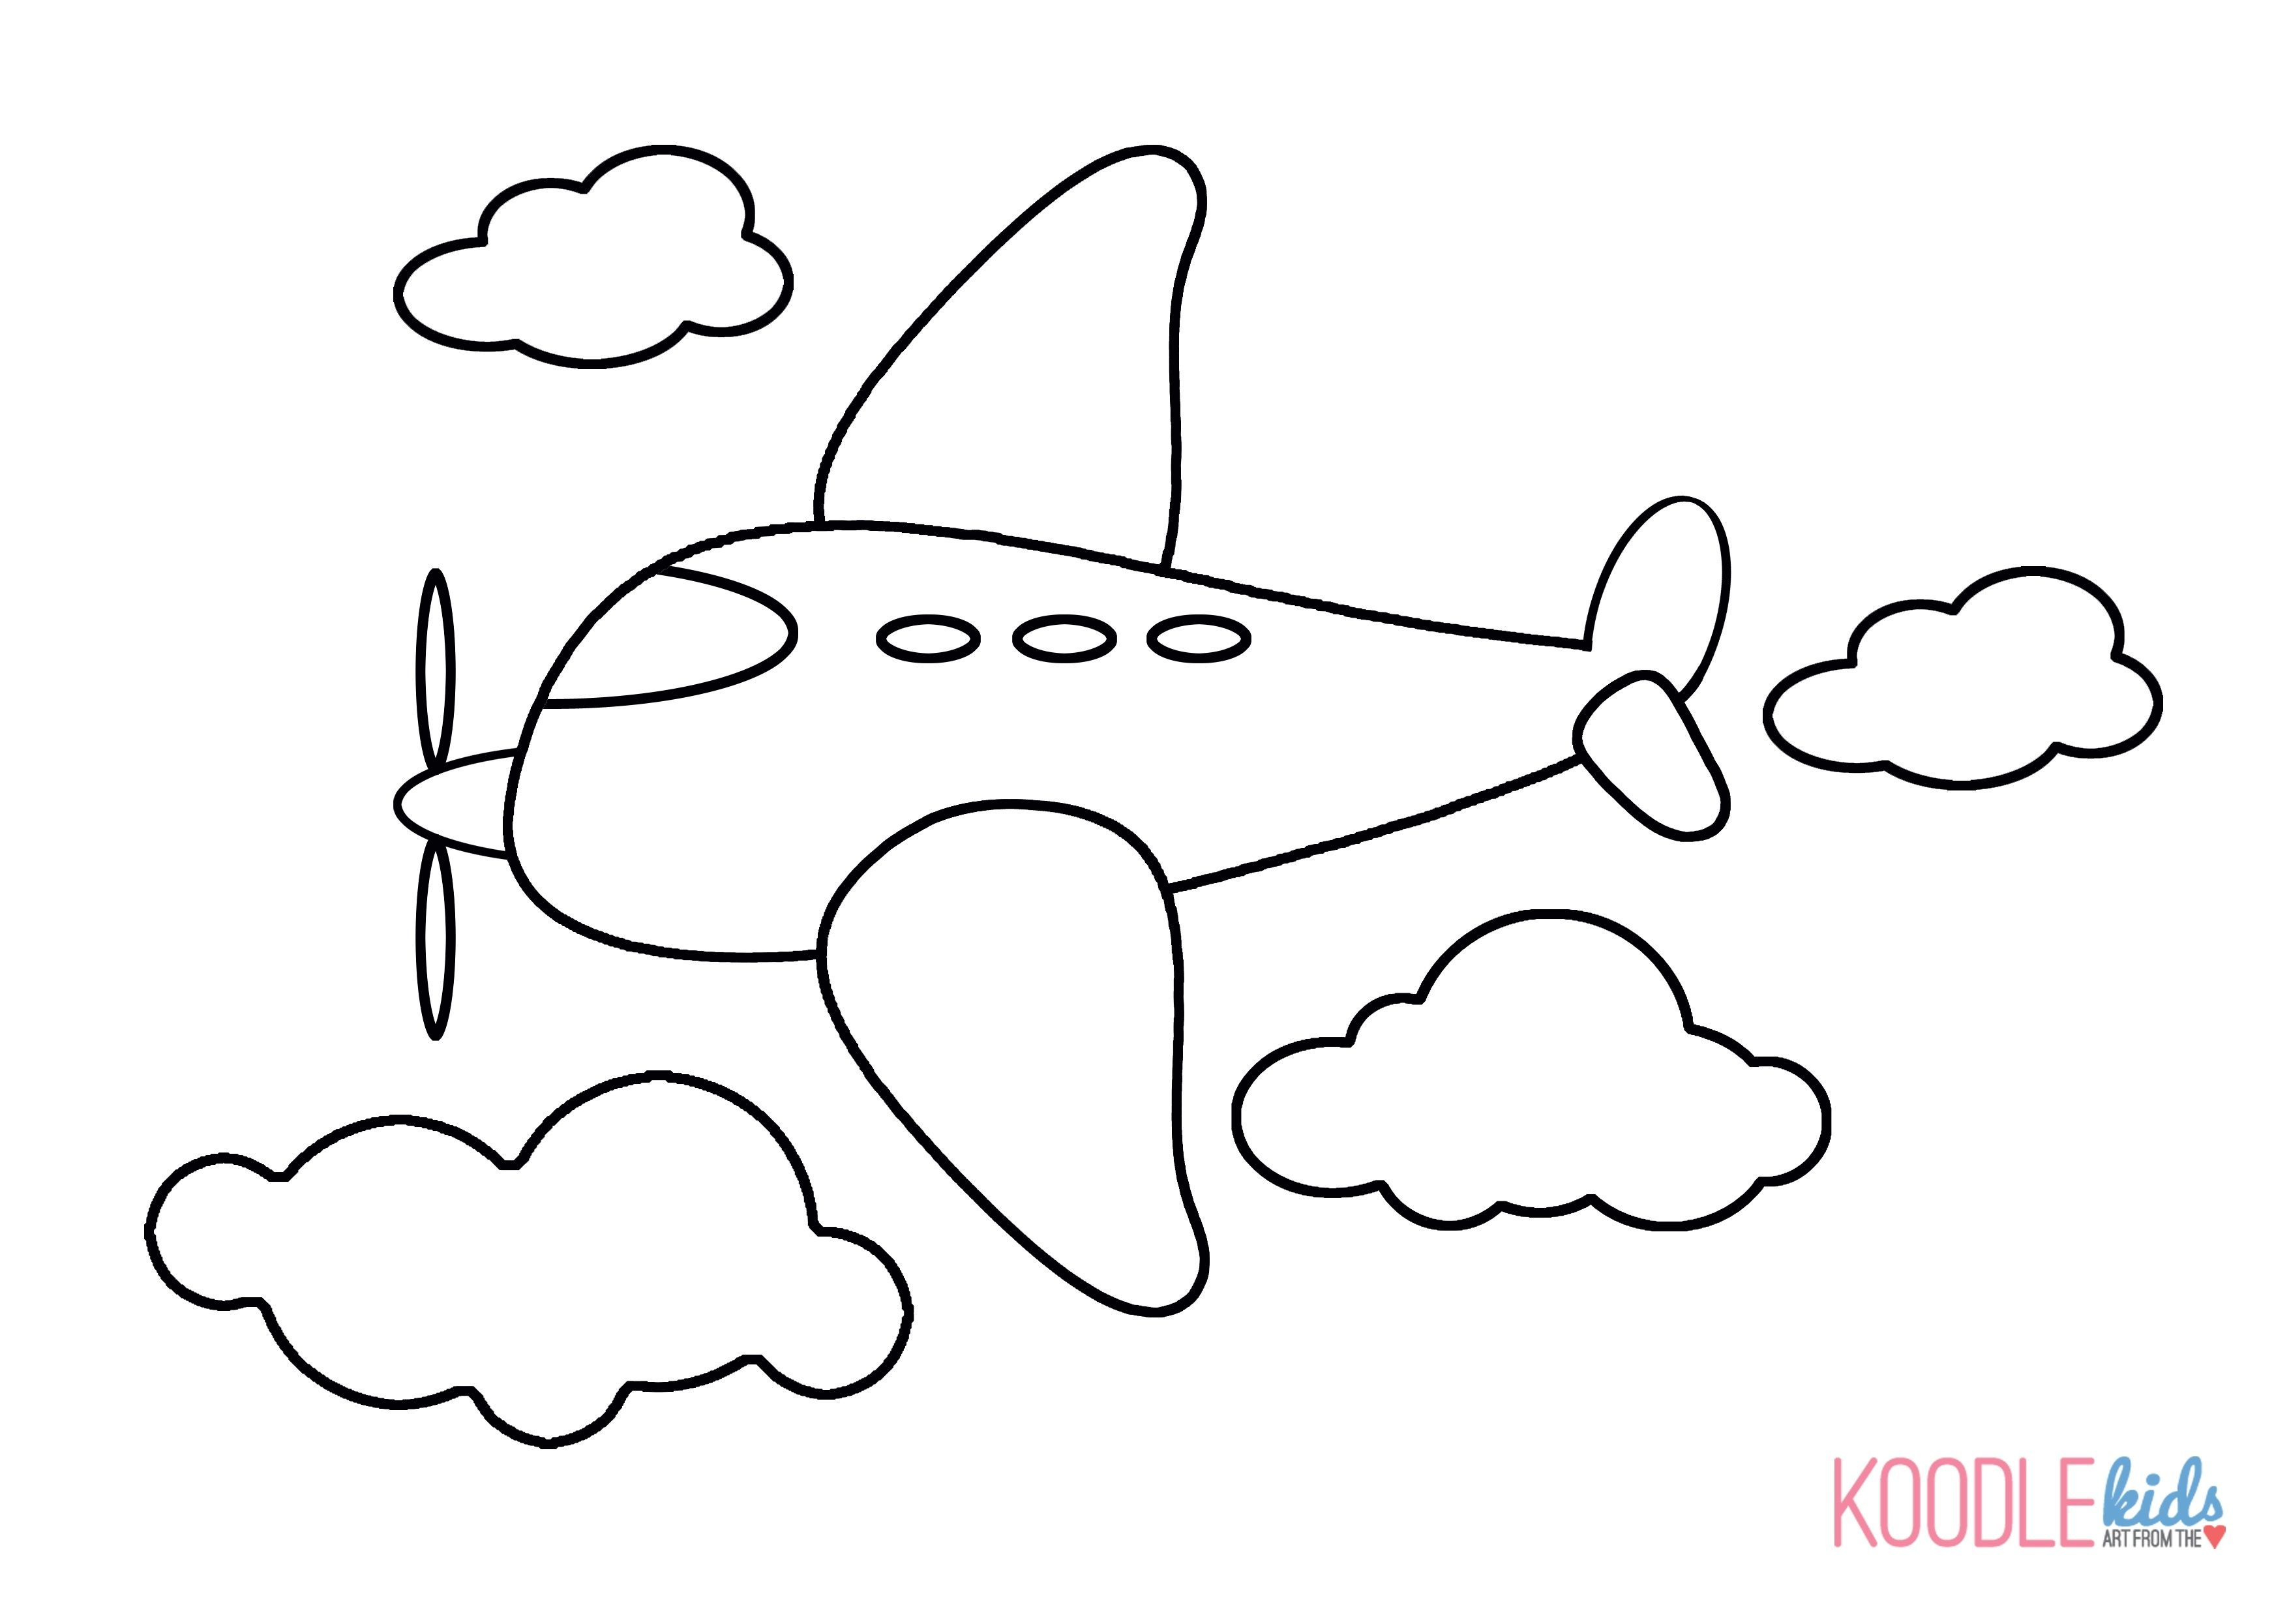 Airplane Coloring Picture for kids | Airplane Coloring Pages ...